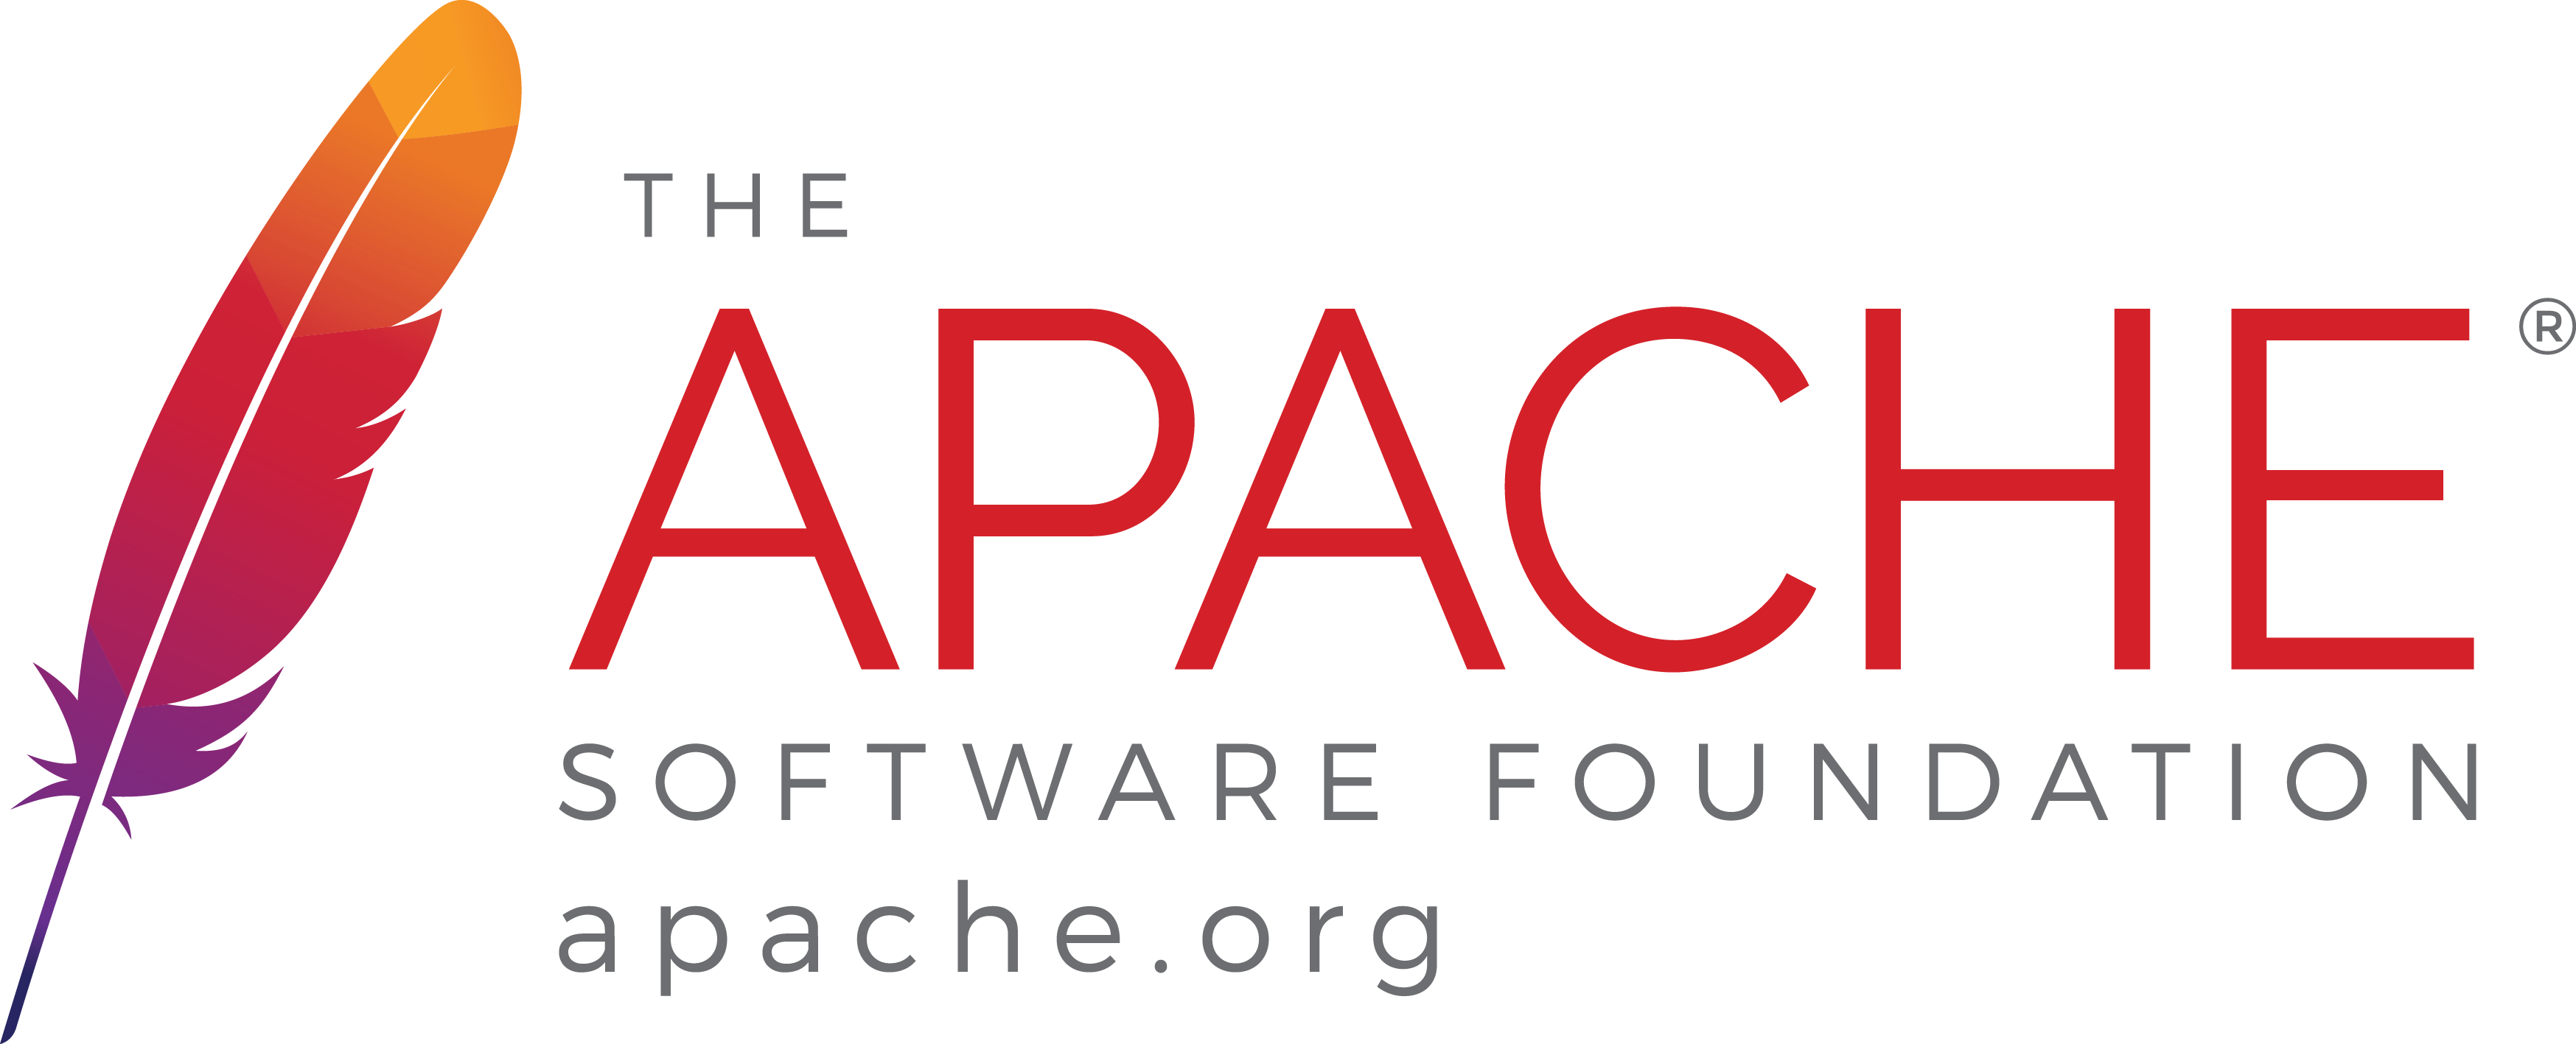 Apache Software Foundation Graphics.